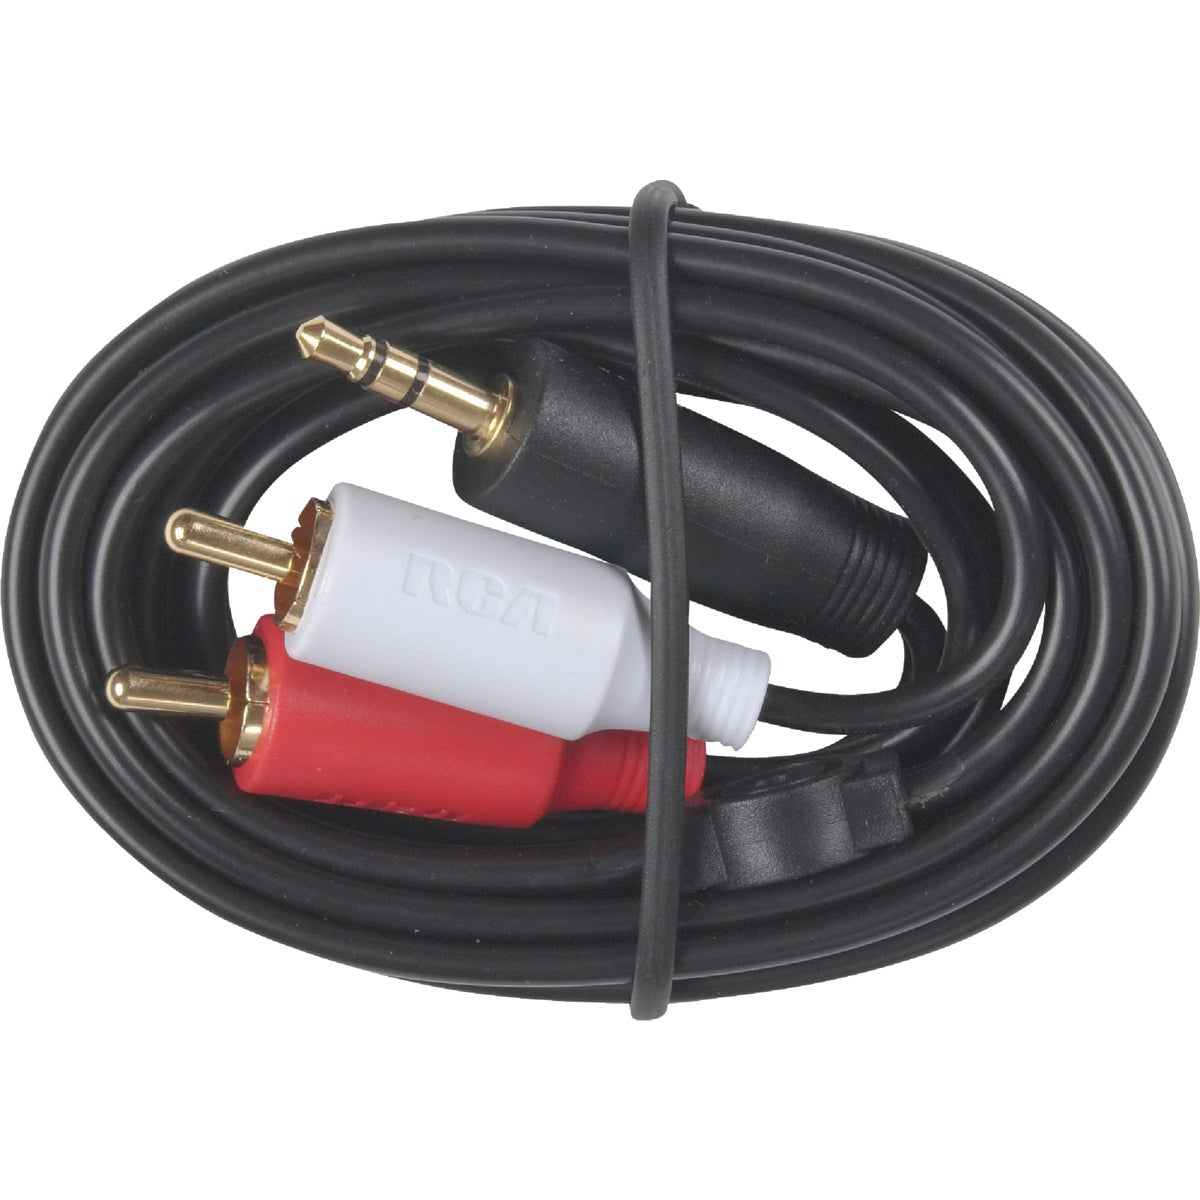 Audiovox Accessories 3' Y STEREO CABLE PLUG AH205NV